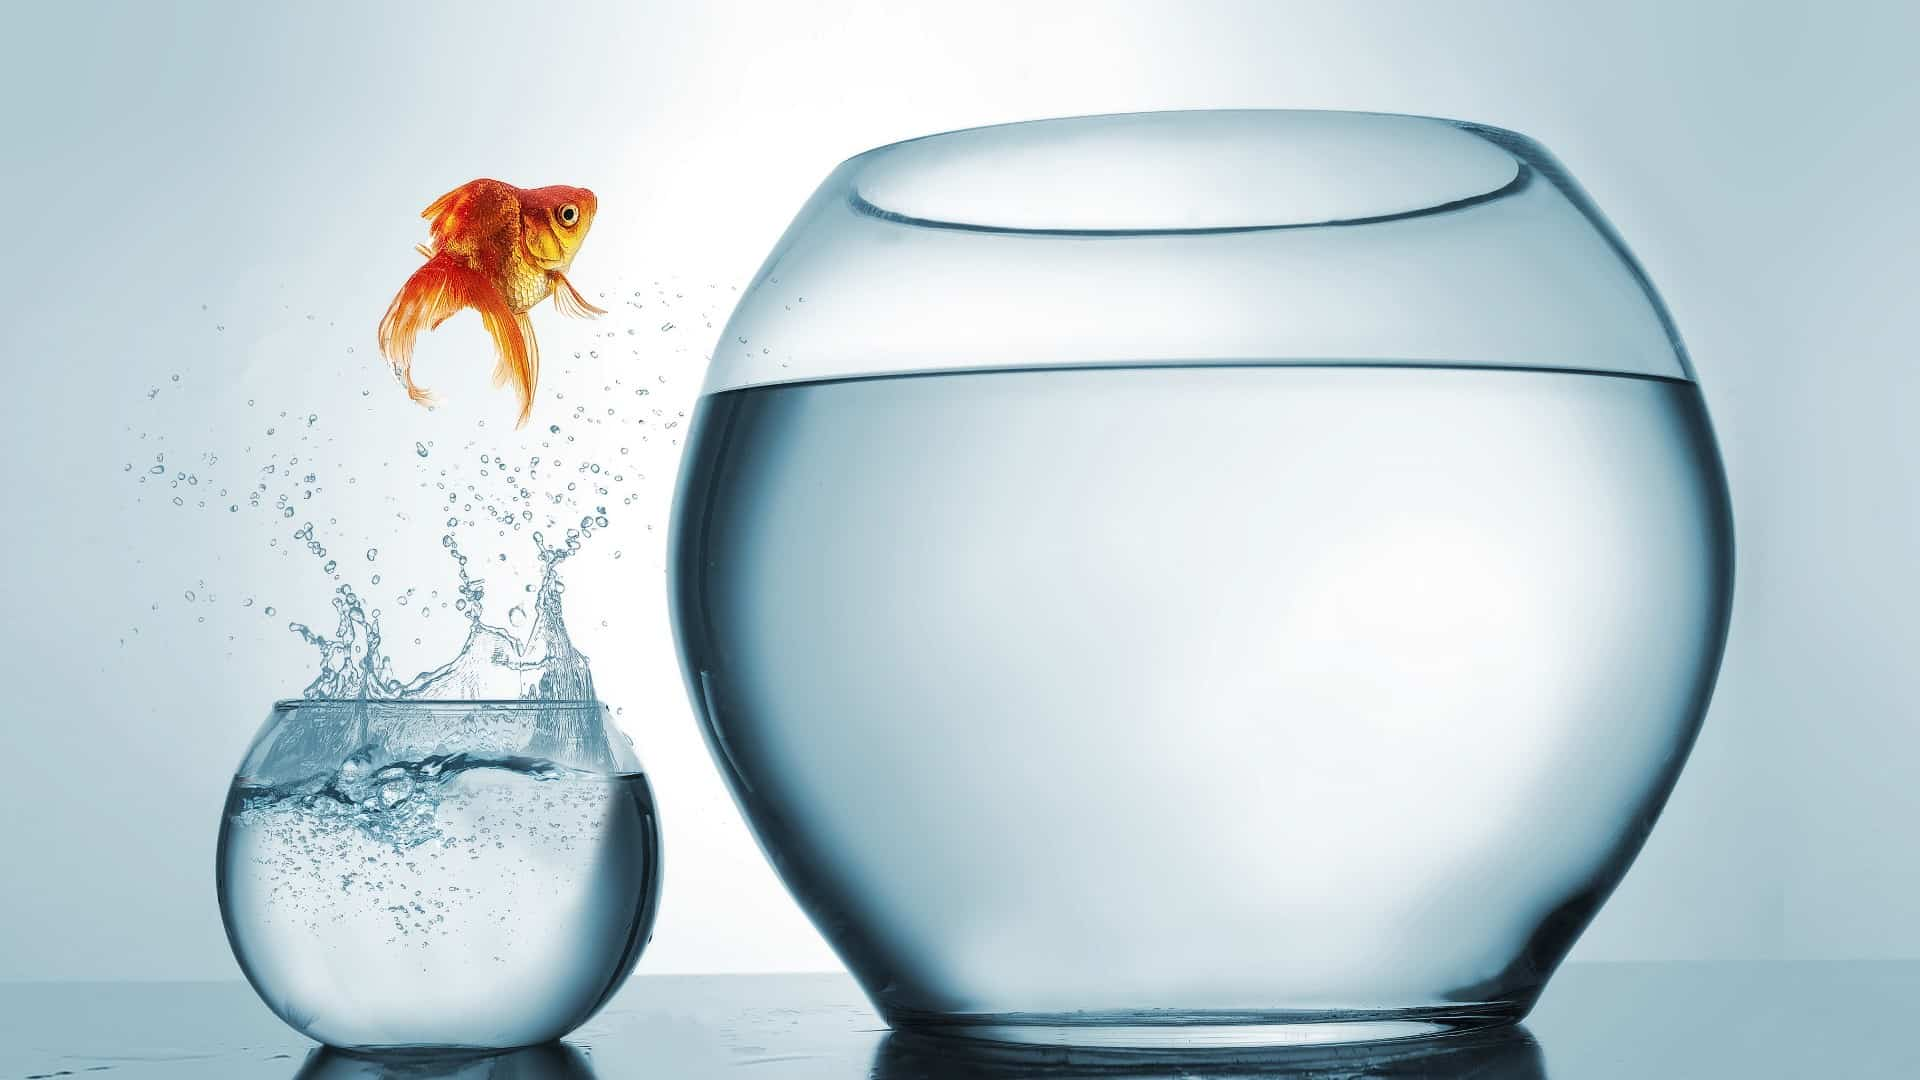 Goldfish leaping out of its small bowl into a larger bowl